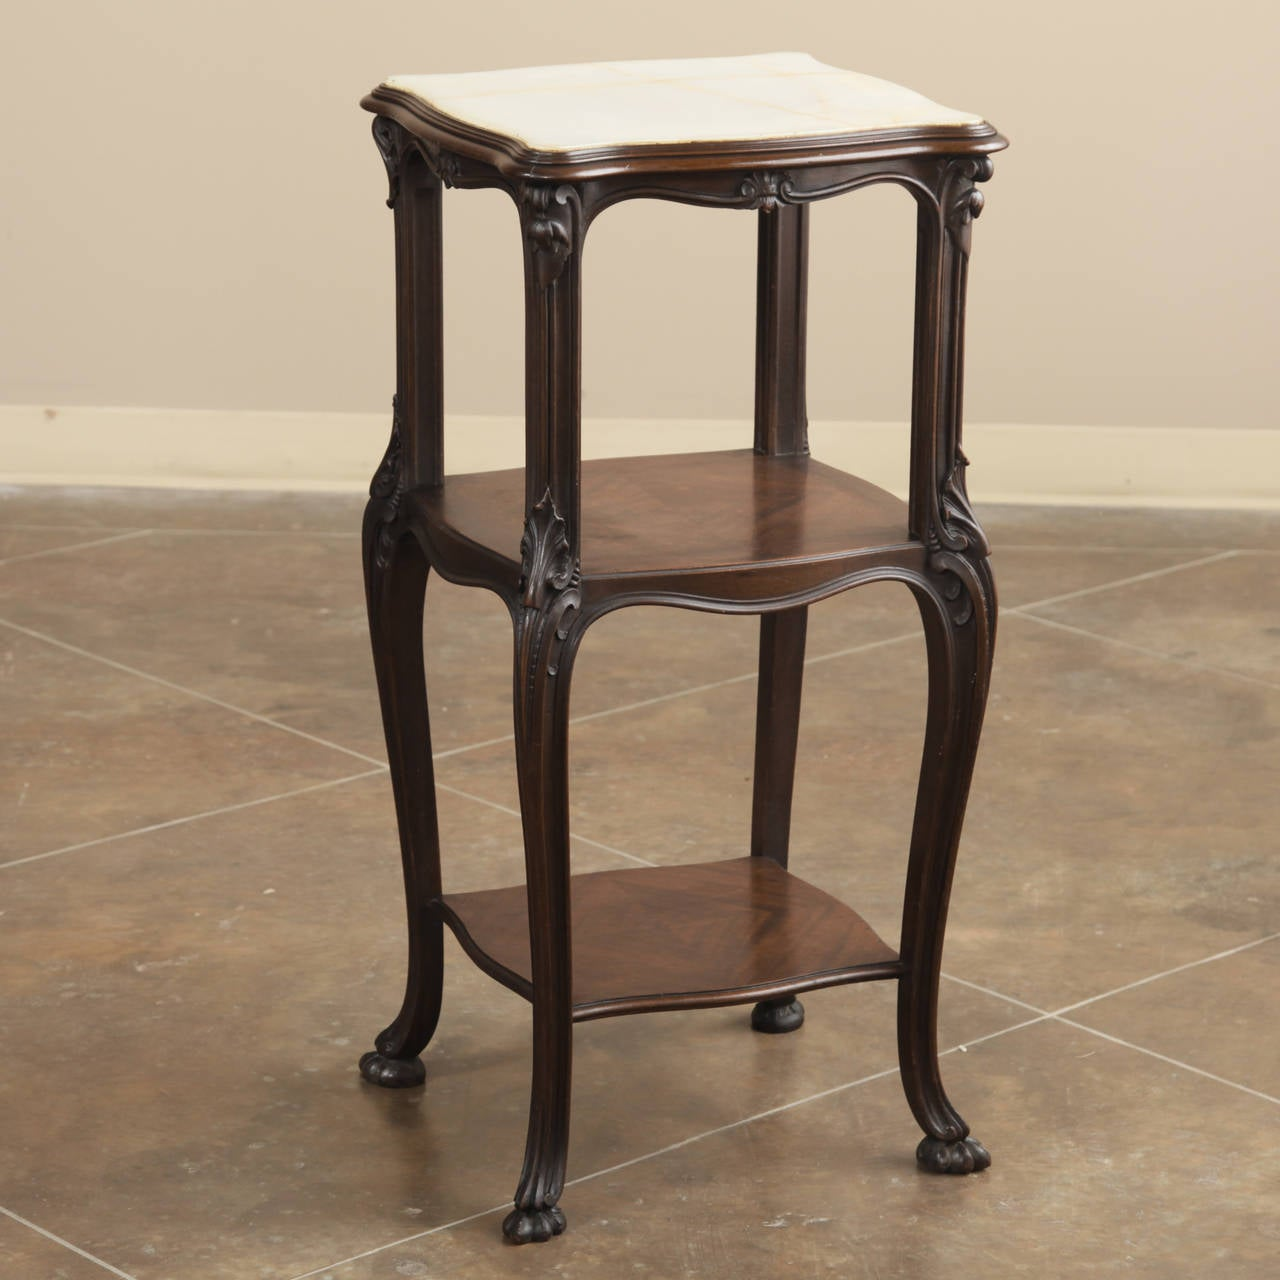 Late 19th Century 19th Century French Antique Solid Rosewood Onyx Top Nightstand or Lamp Table For Sale